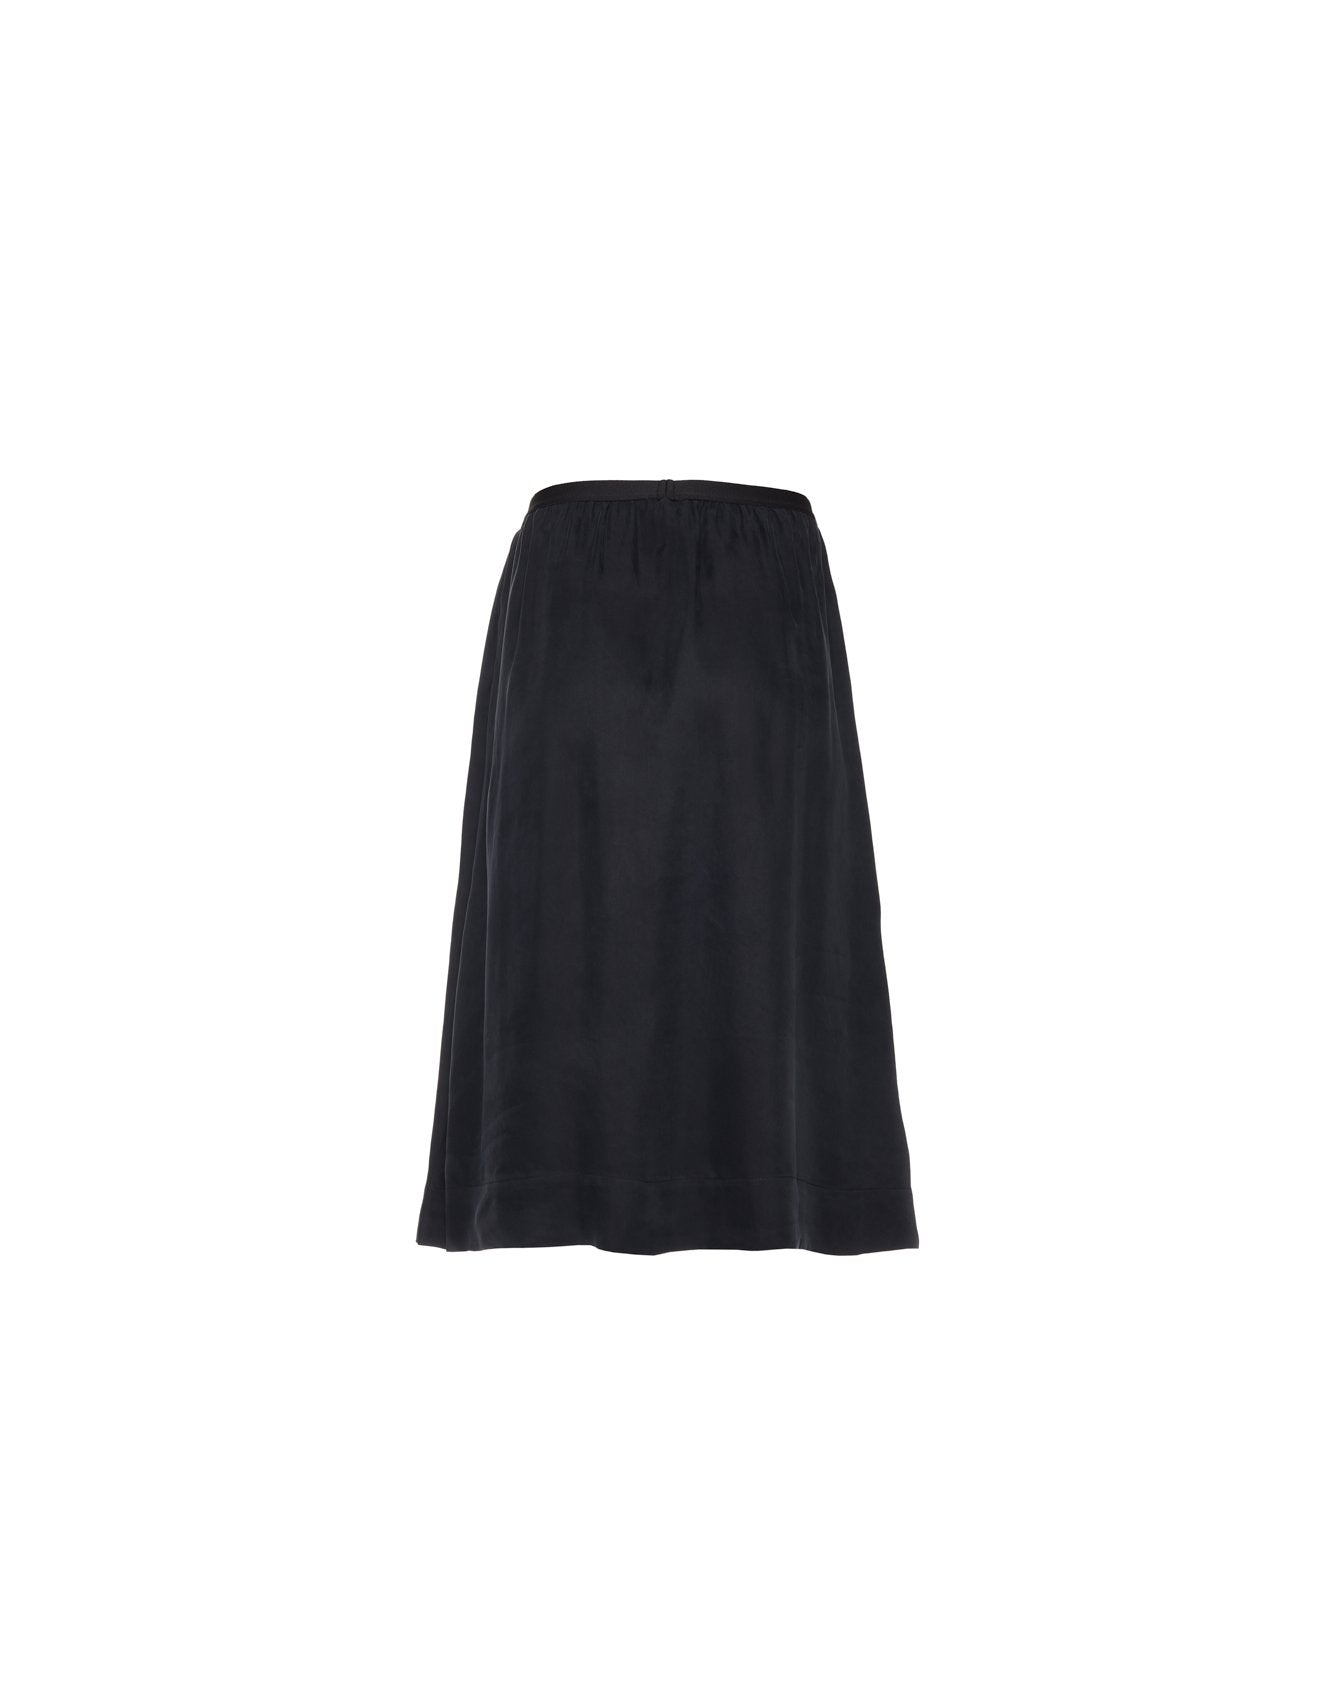 Bellerose black viscose flared skirt for women